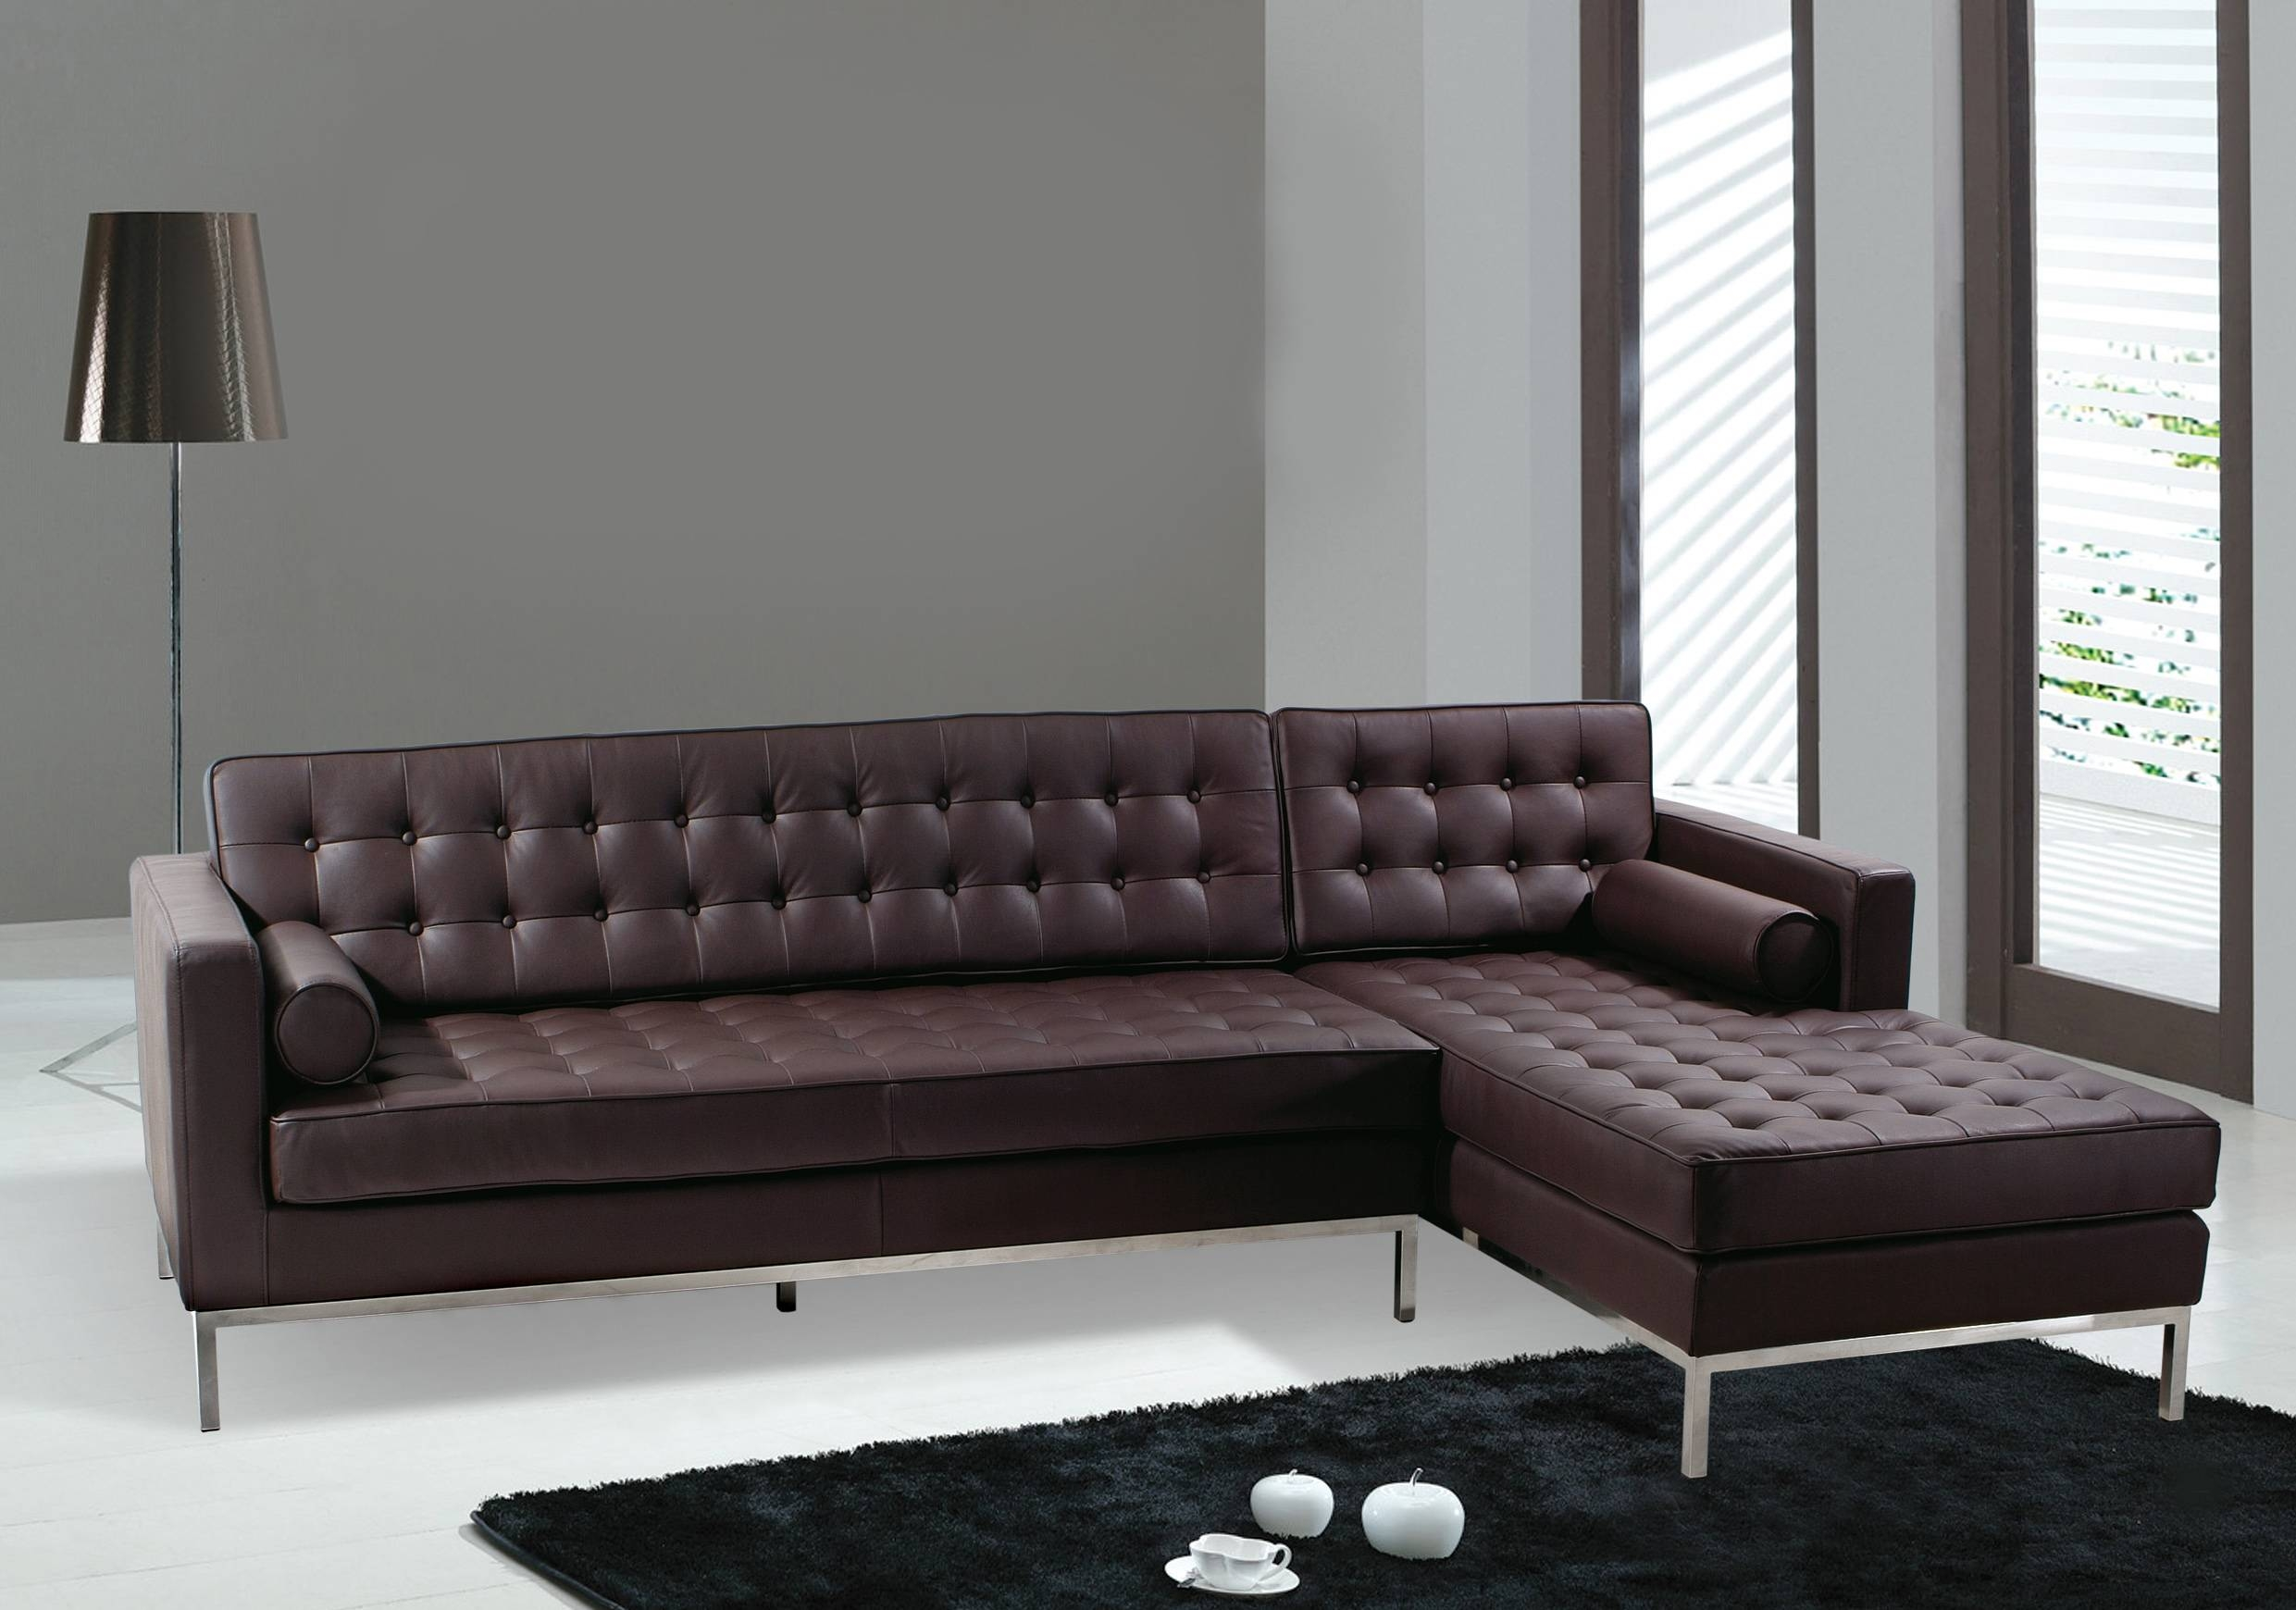 Elegant Sectional Sofas Dallas 29 For Your Yellow Sleeper Sofa Regarding  Dallas Sleeper Sofas (Image